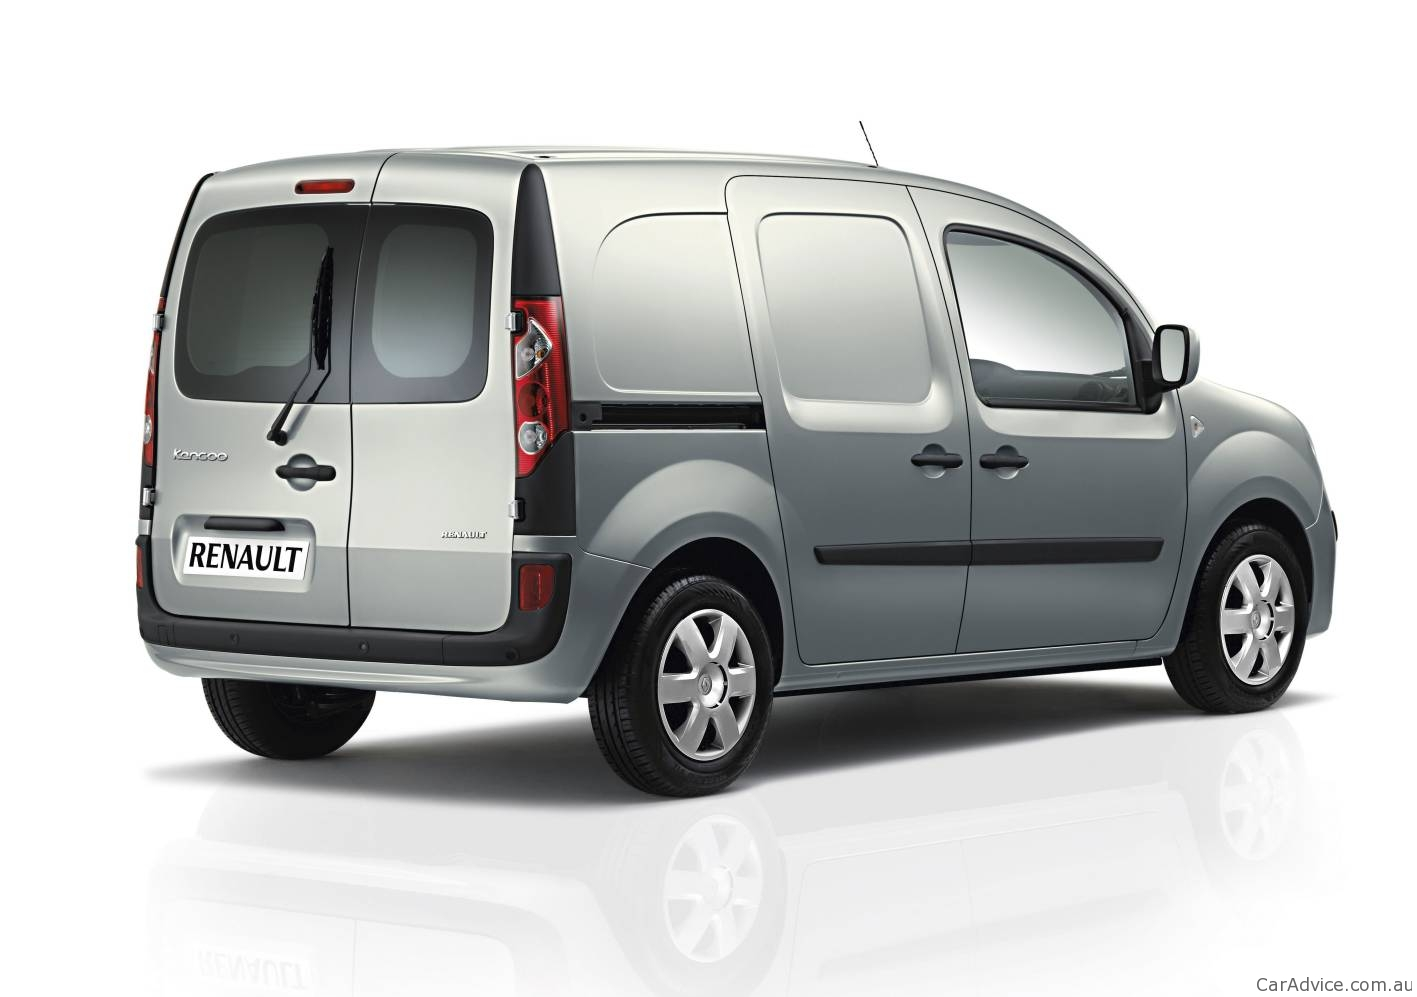 2011 renault kangoo available in australia photos caradvice. Black Bedroom Furniture Sets. Home Design Ideas